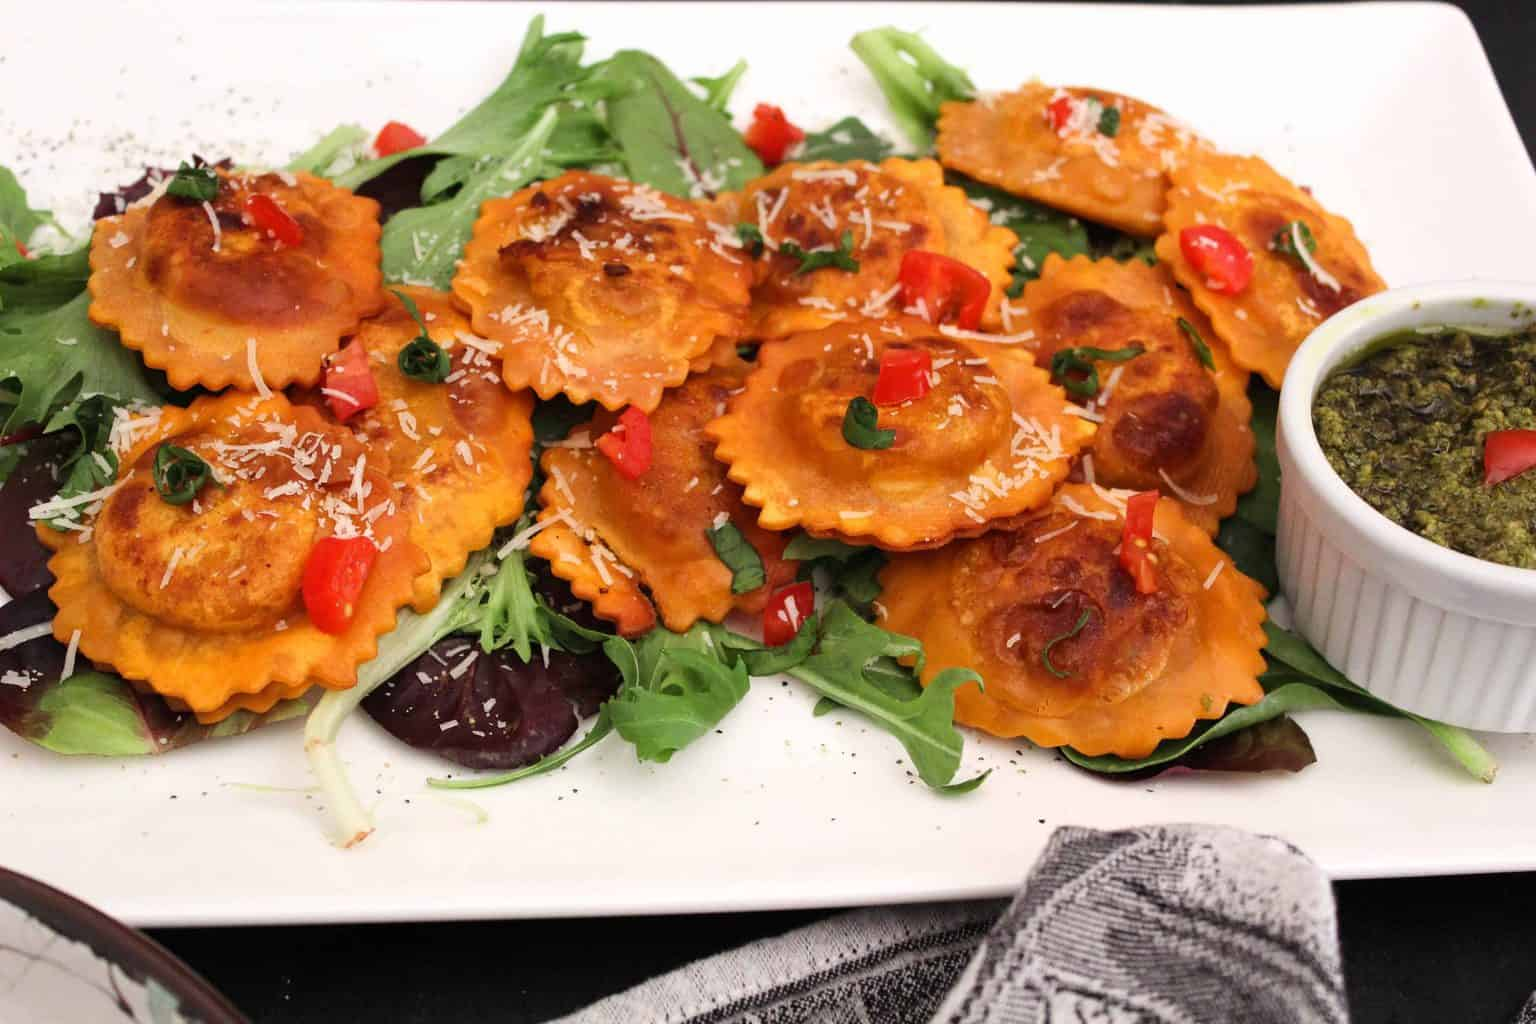 Easy Pan Fried Ravioli Appetizer on a Plate with Dipping Sauce